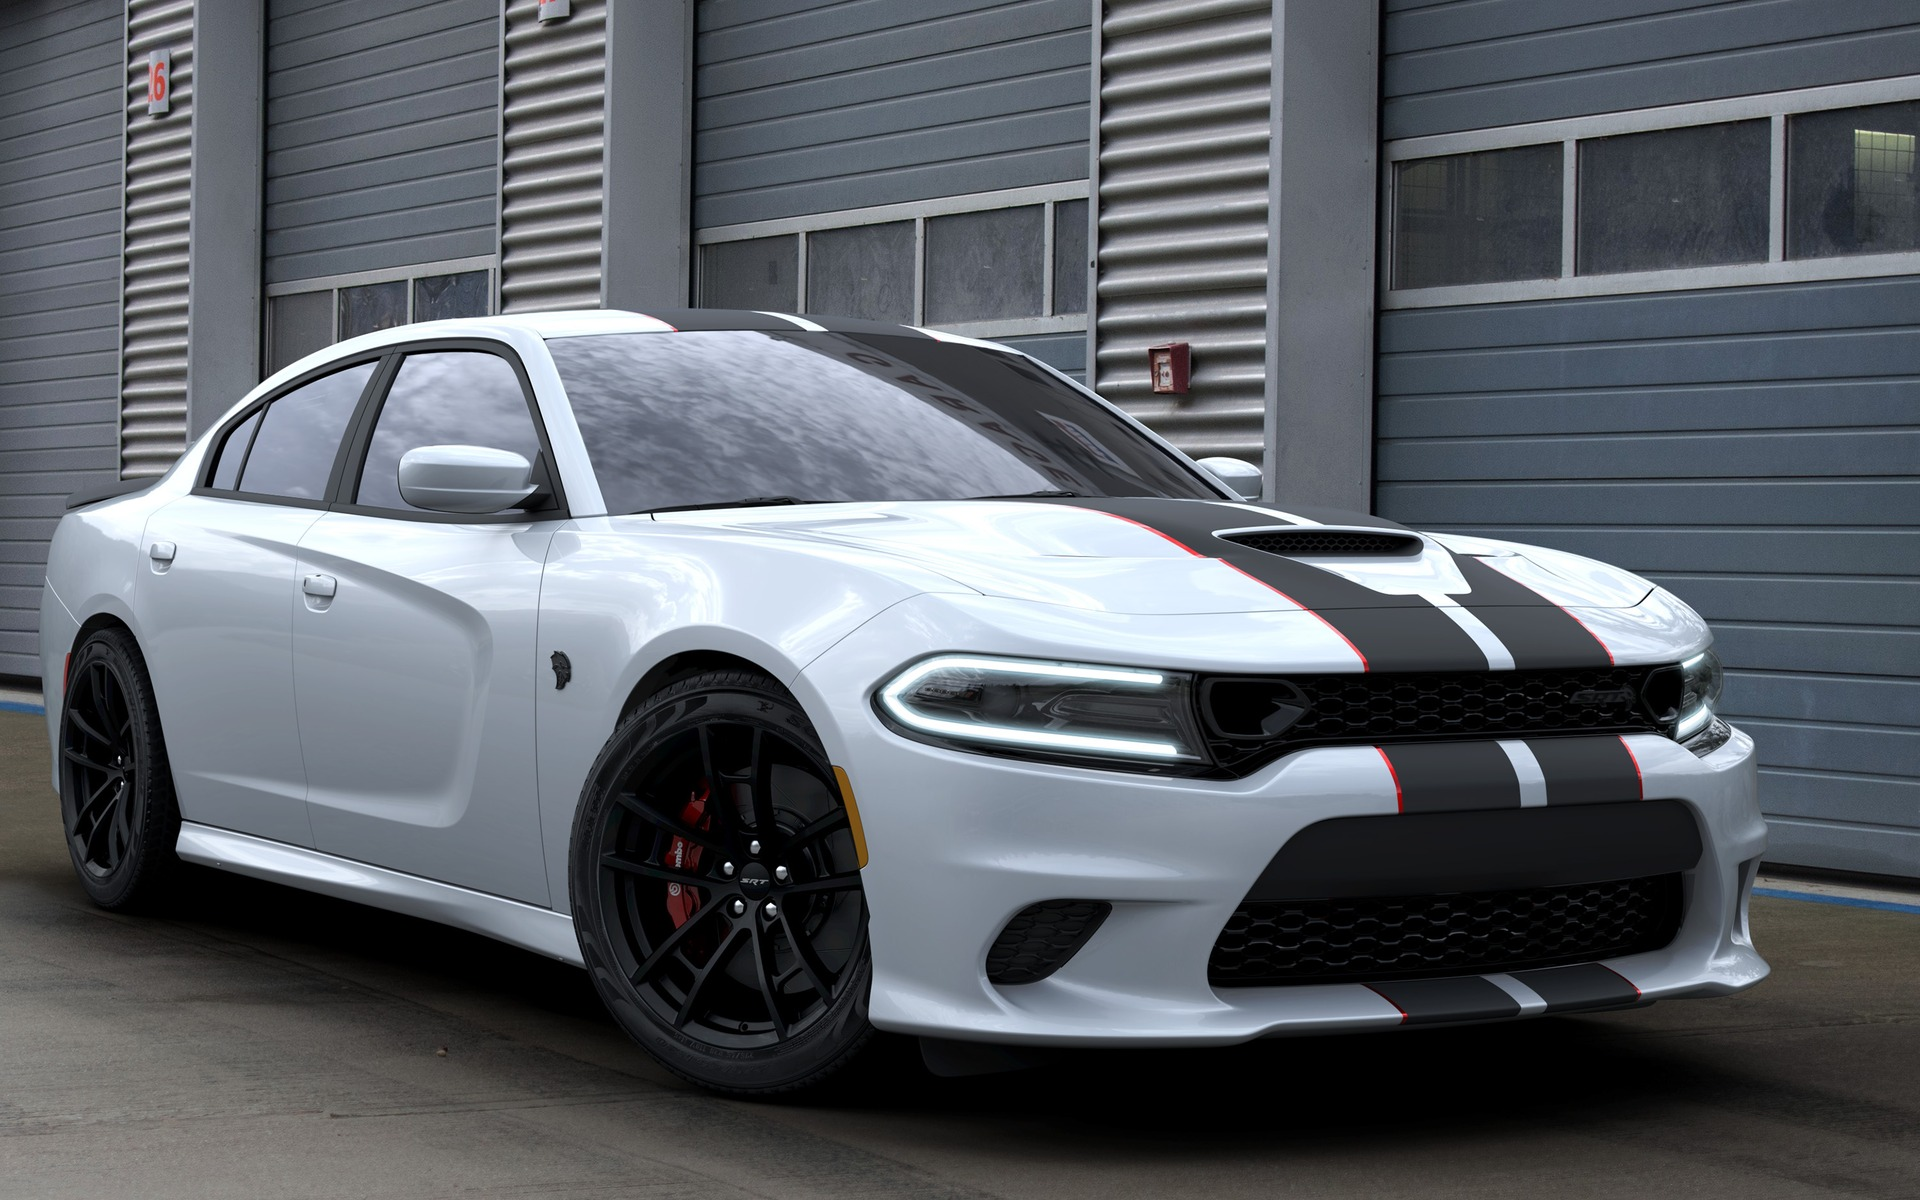 Voici la Dodge Charger SRT Hellcat Octane 380366_2019_Dodge_Charger